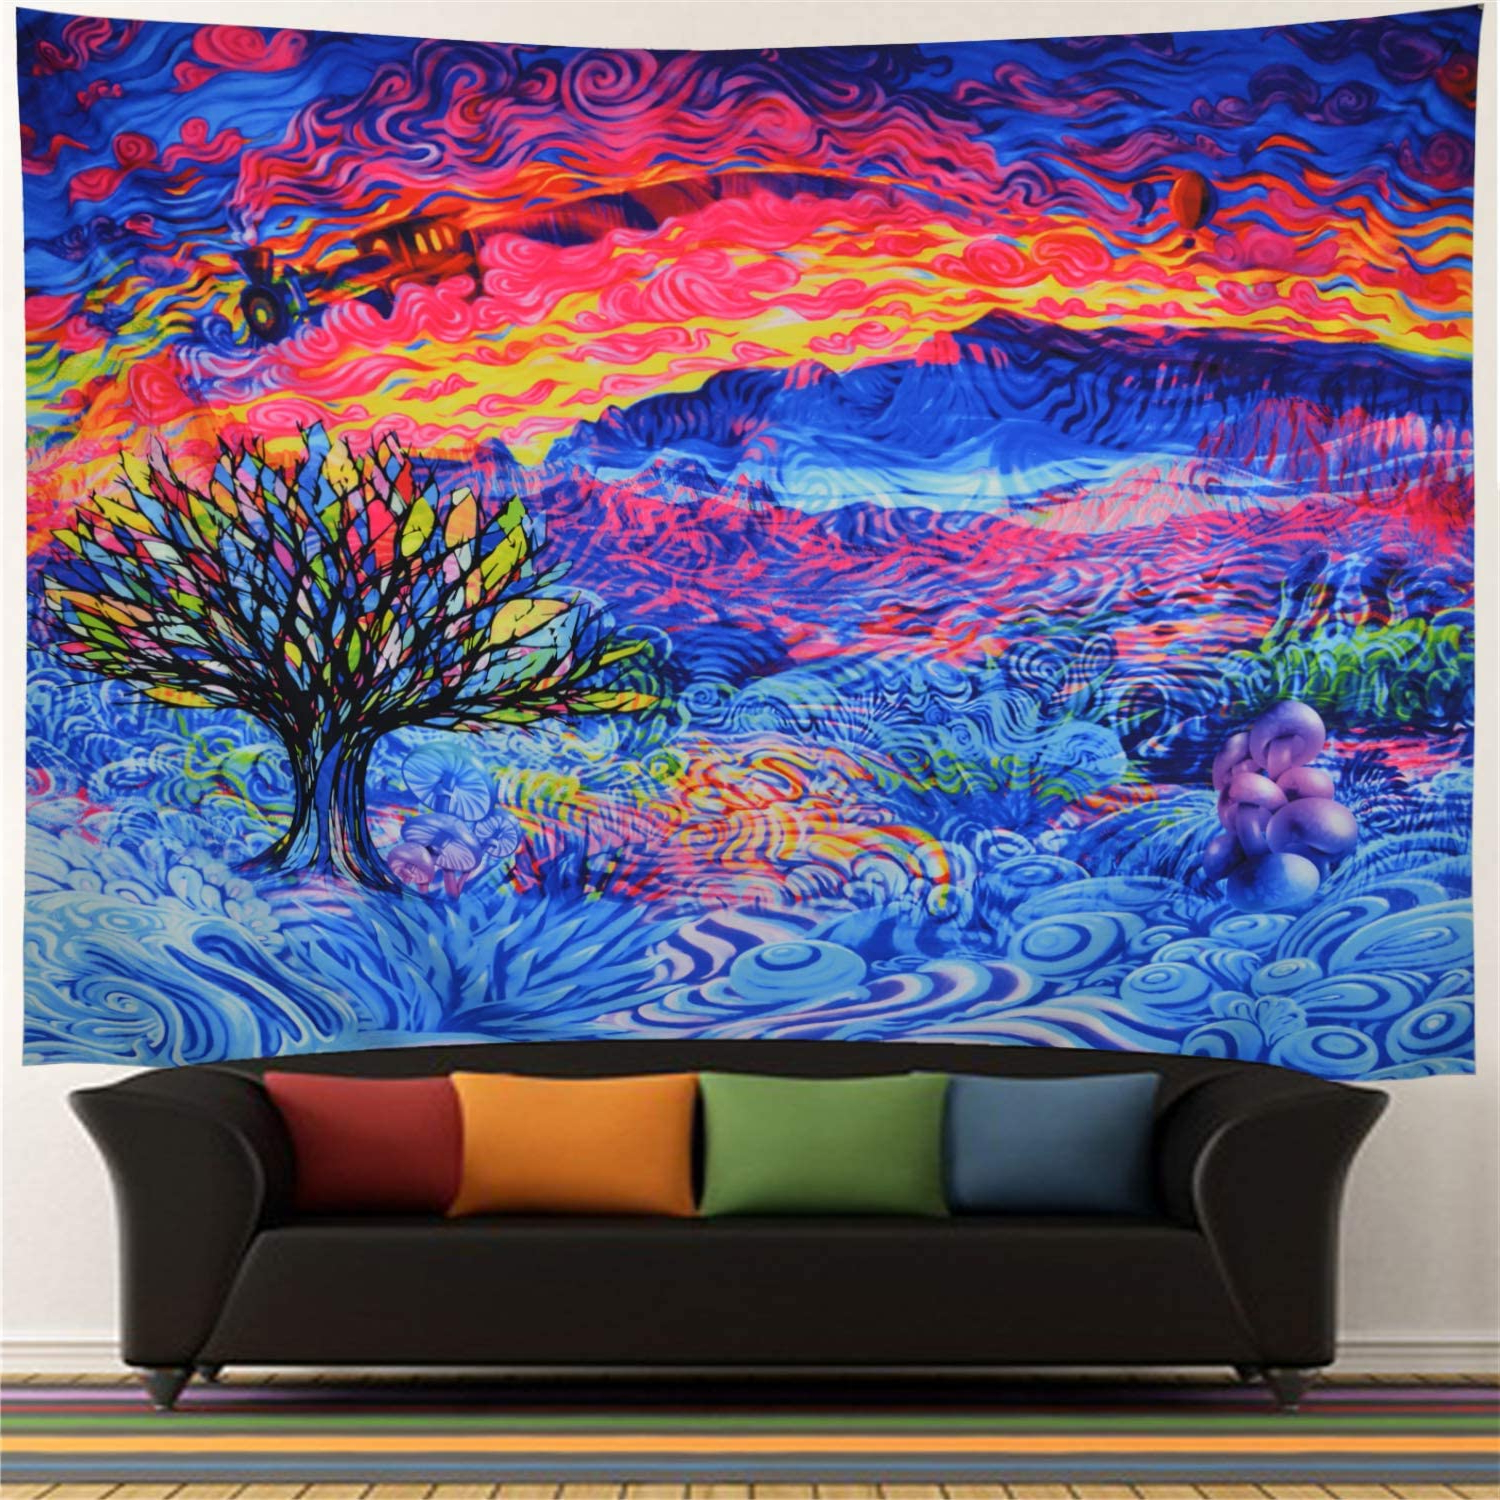 Best And Newest Blended Fabric Living Life Tapestries Intended For Tree Of Life Tapestry Colorful Tree Tapestry Psychedelic Tapestry Trippy Tree Wall Art Tapestry Wall Hanging For Bedroom Living Room Dorm (x Large, (View 13 of 20)